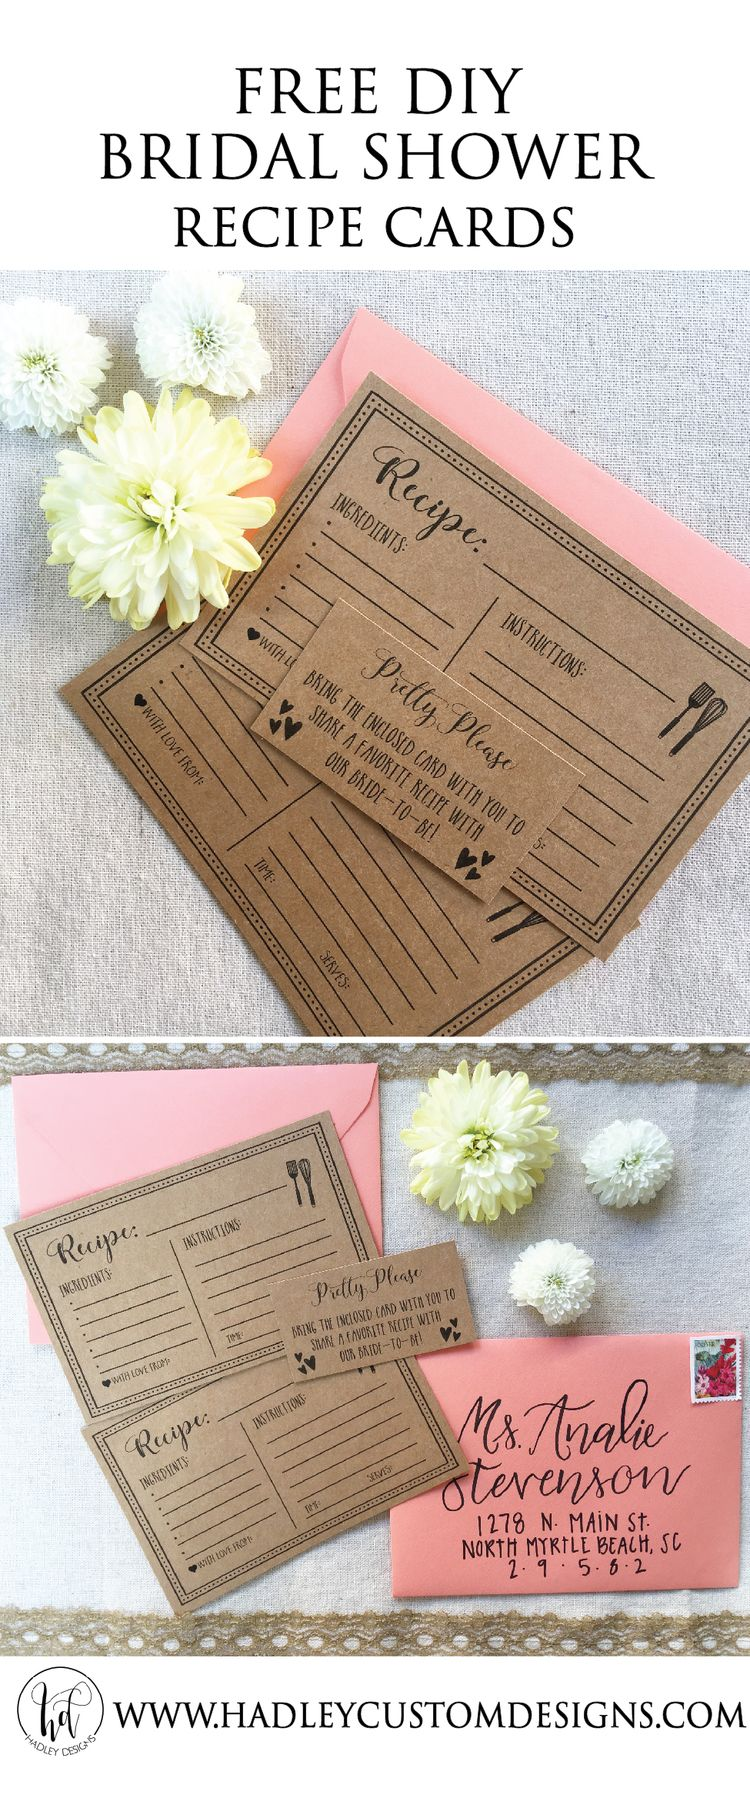 graphic regarding Free Printable Recipe Cards for Bridal Shower named Absolutely free Printable Recipe Playing cards Alyssa Bridal Shower Rustic